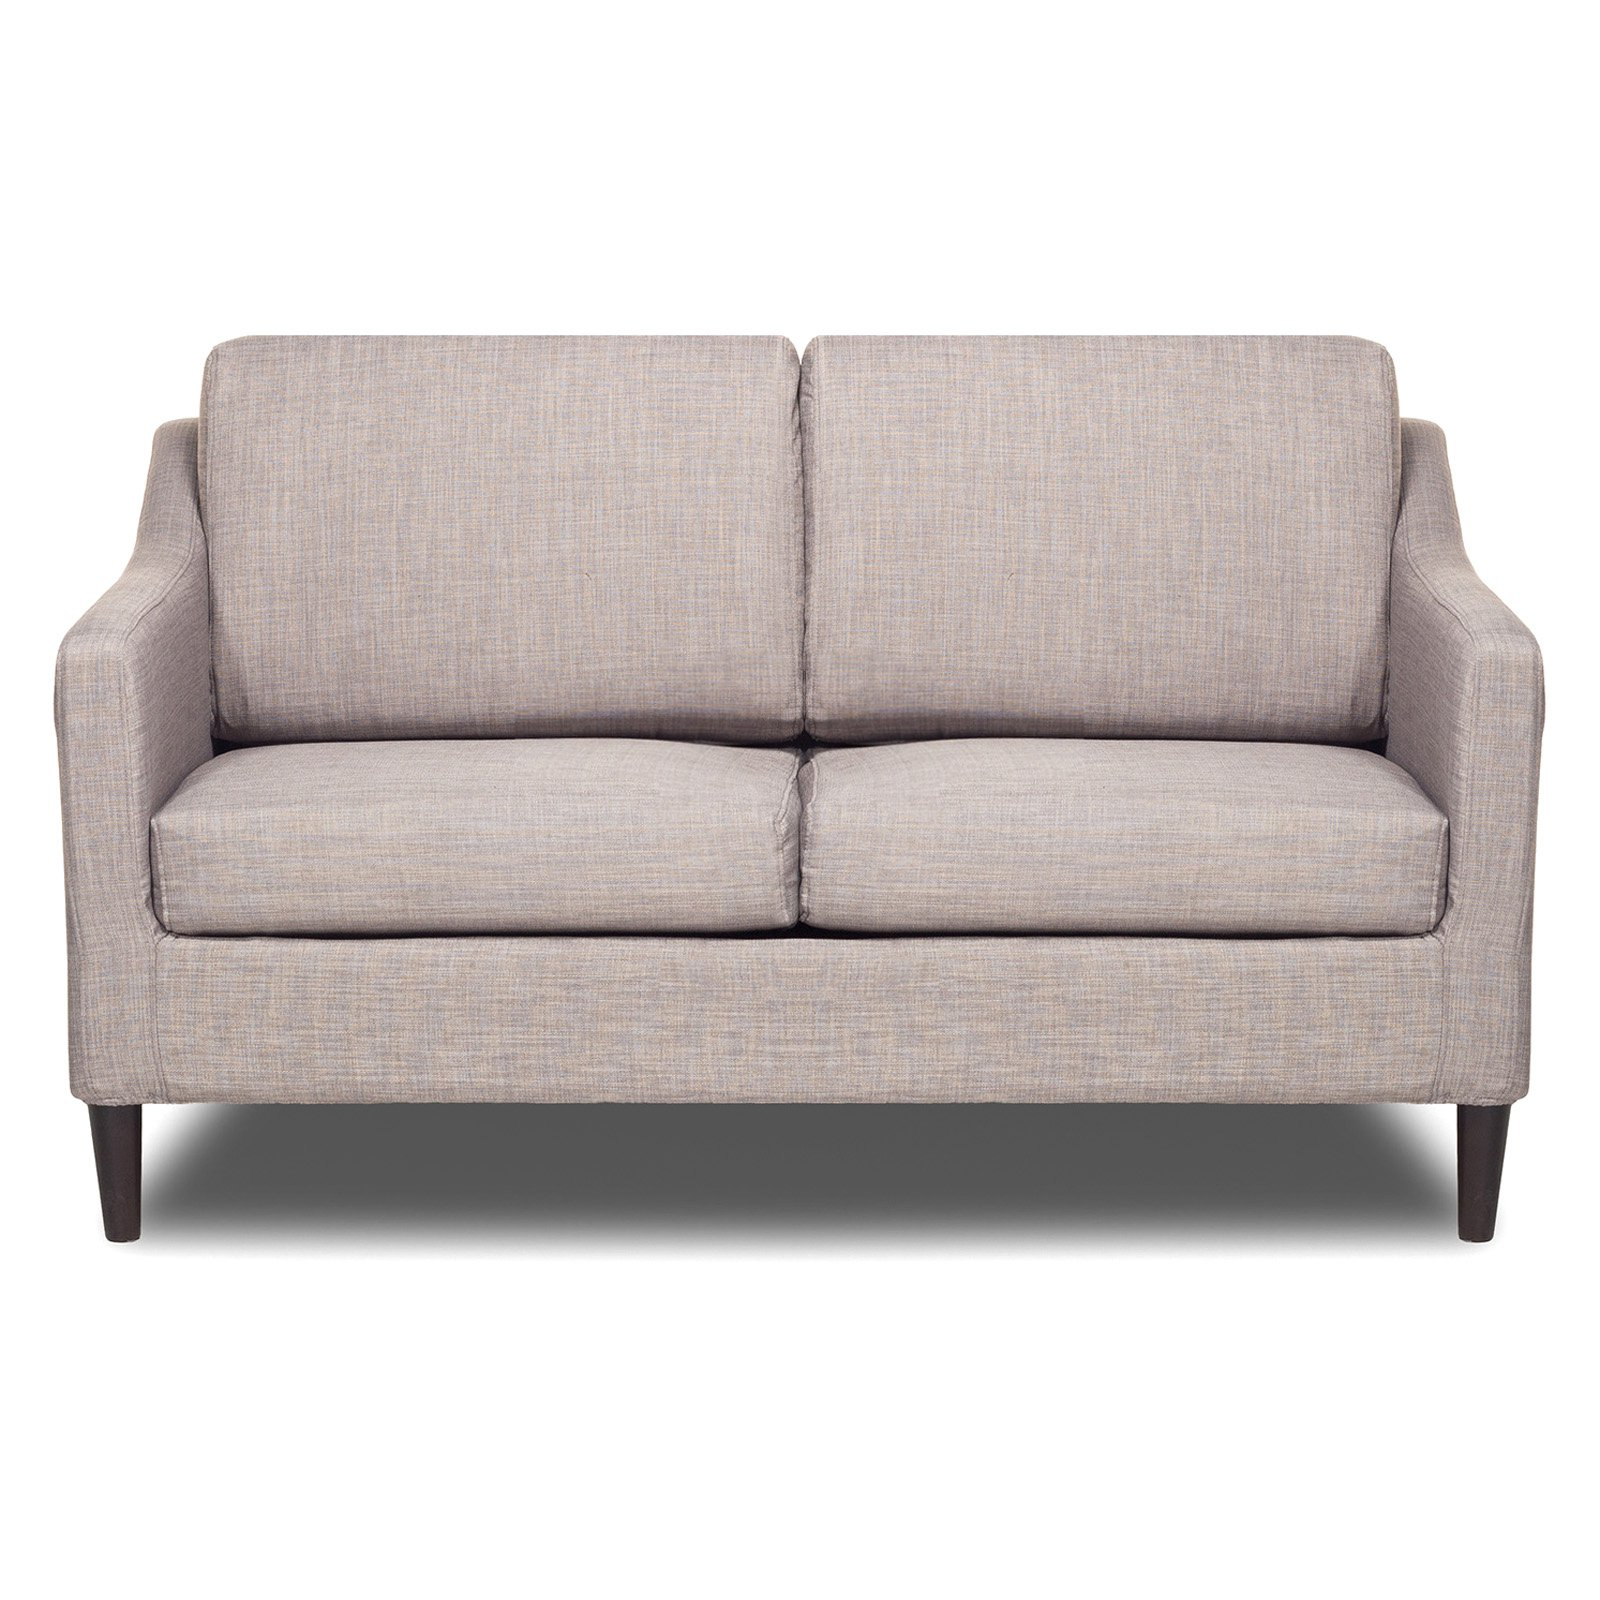 Dwell Home Sofa 2 Go Decker Loveseat